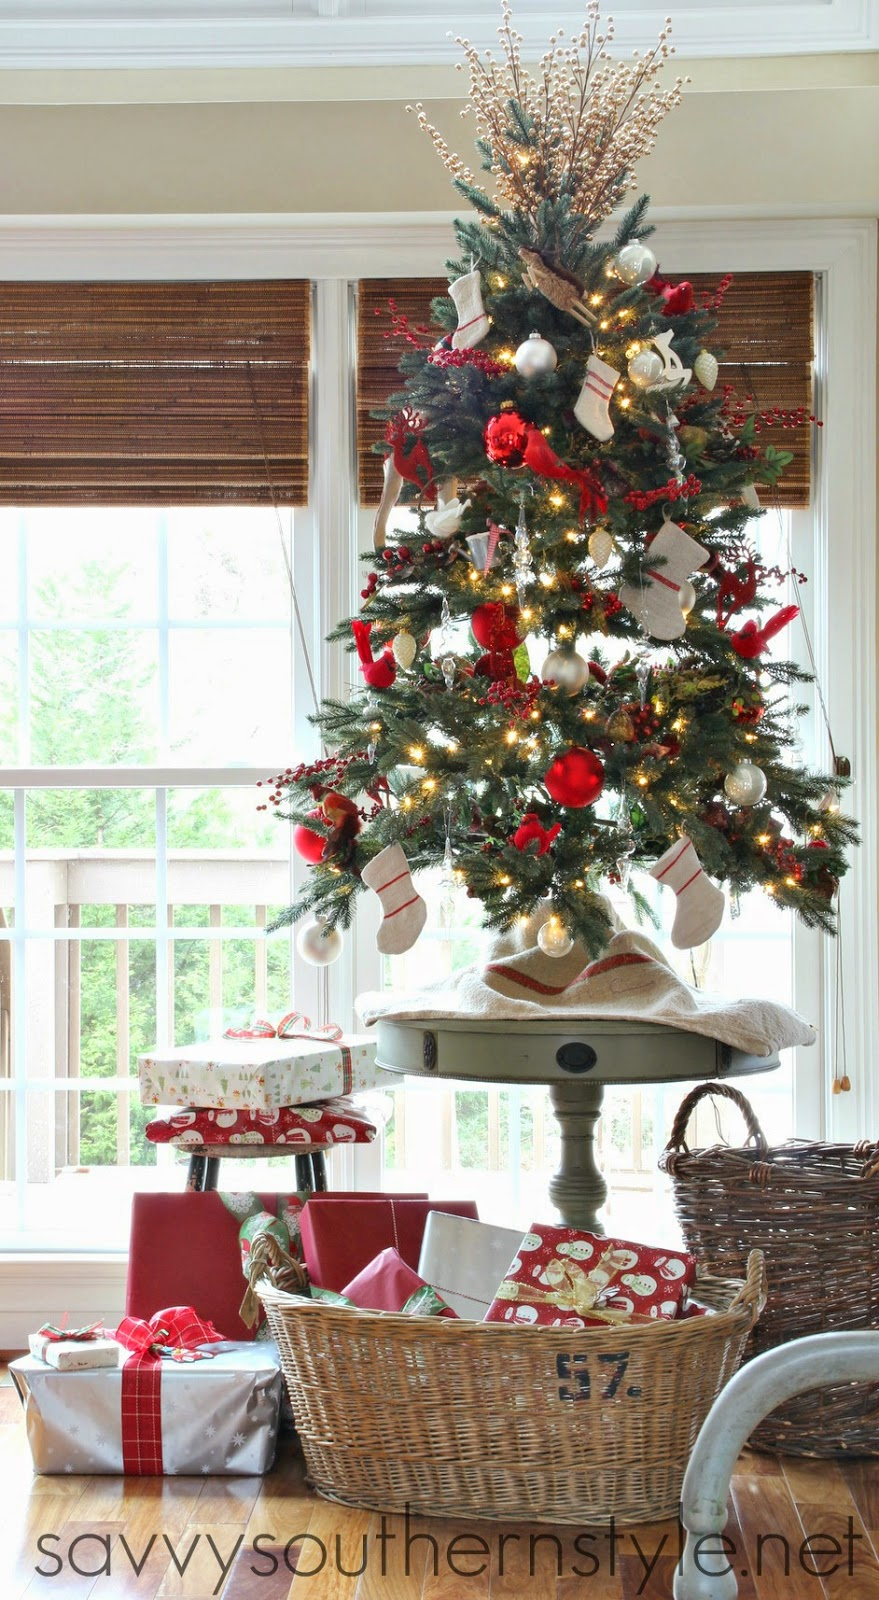 Savvy Southern Style : Oh Little Christmas Tree